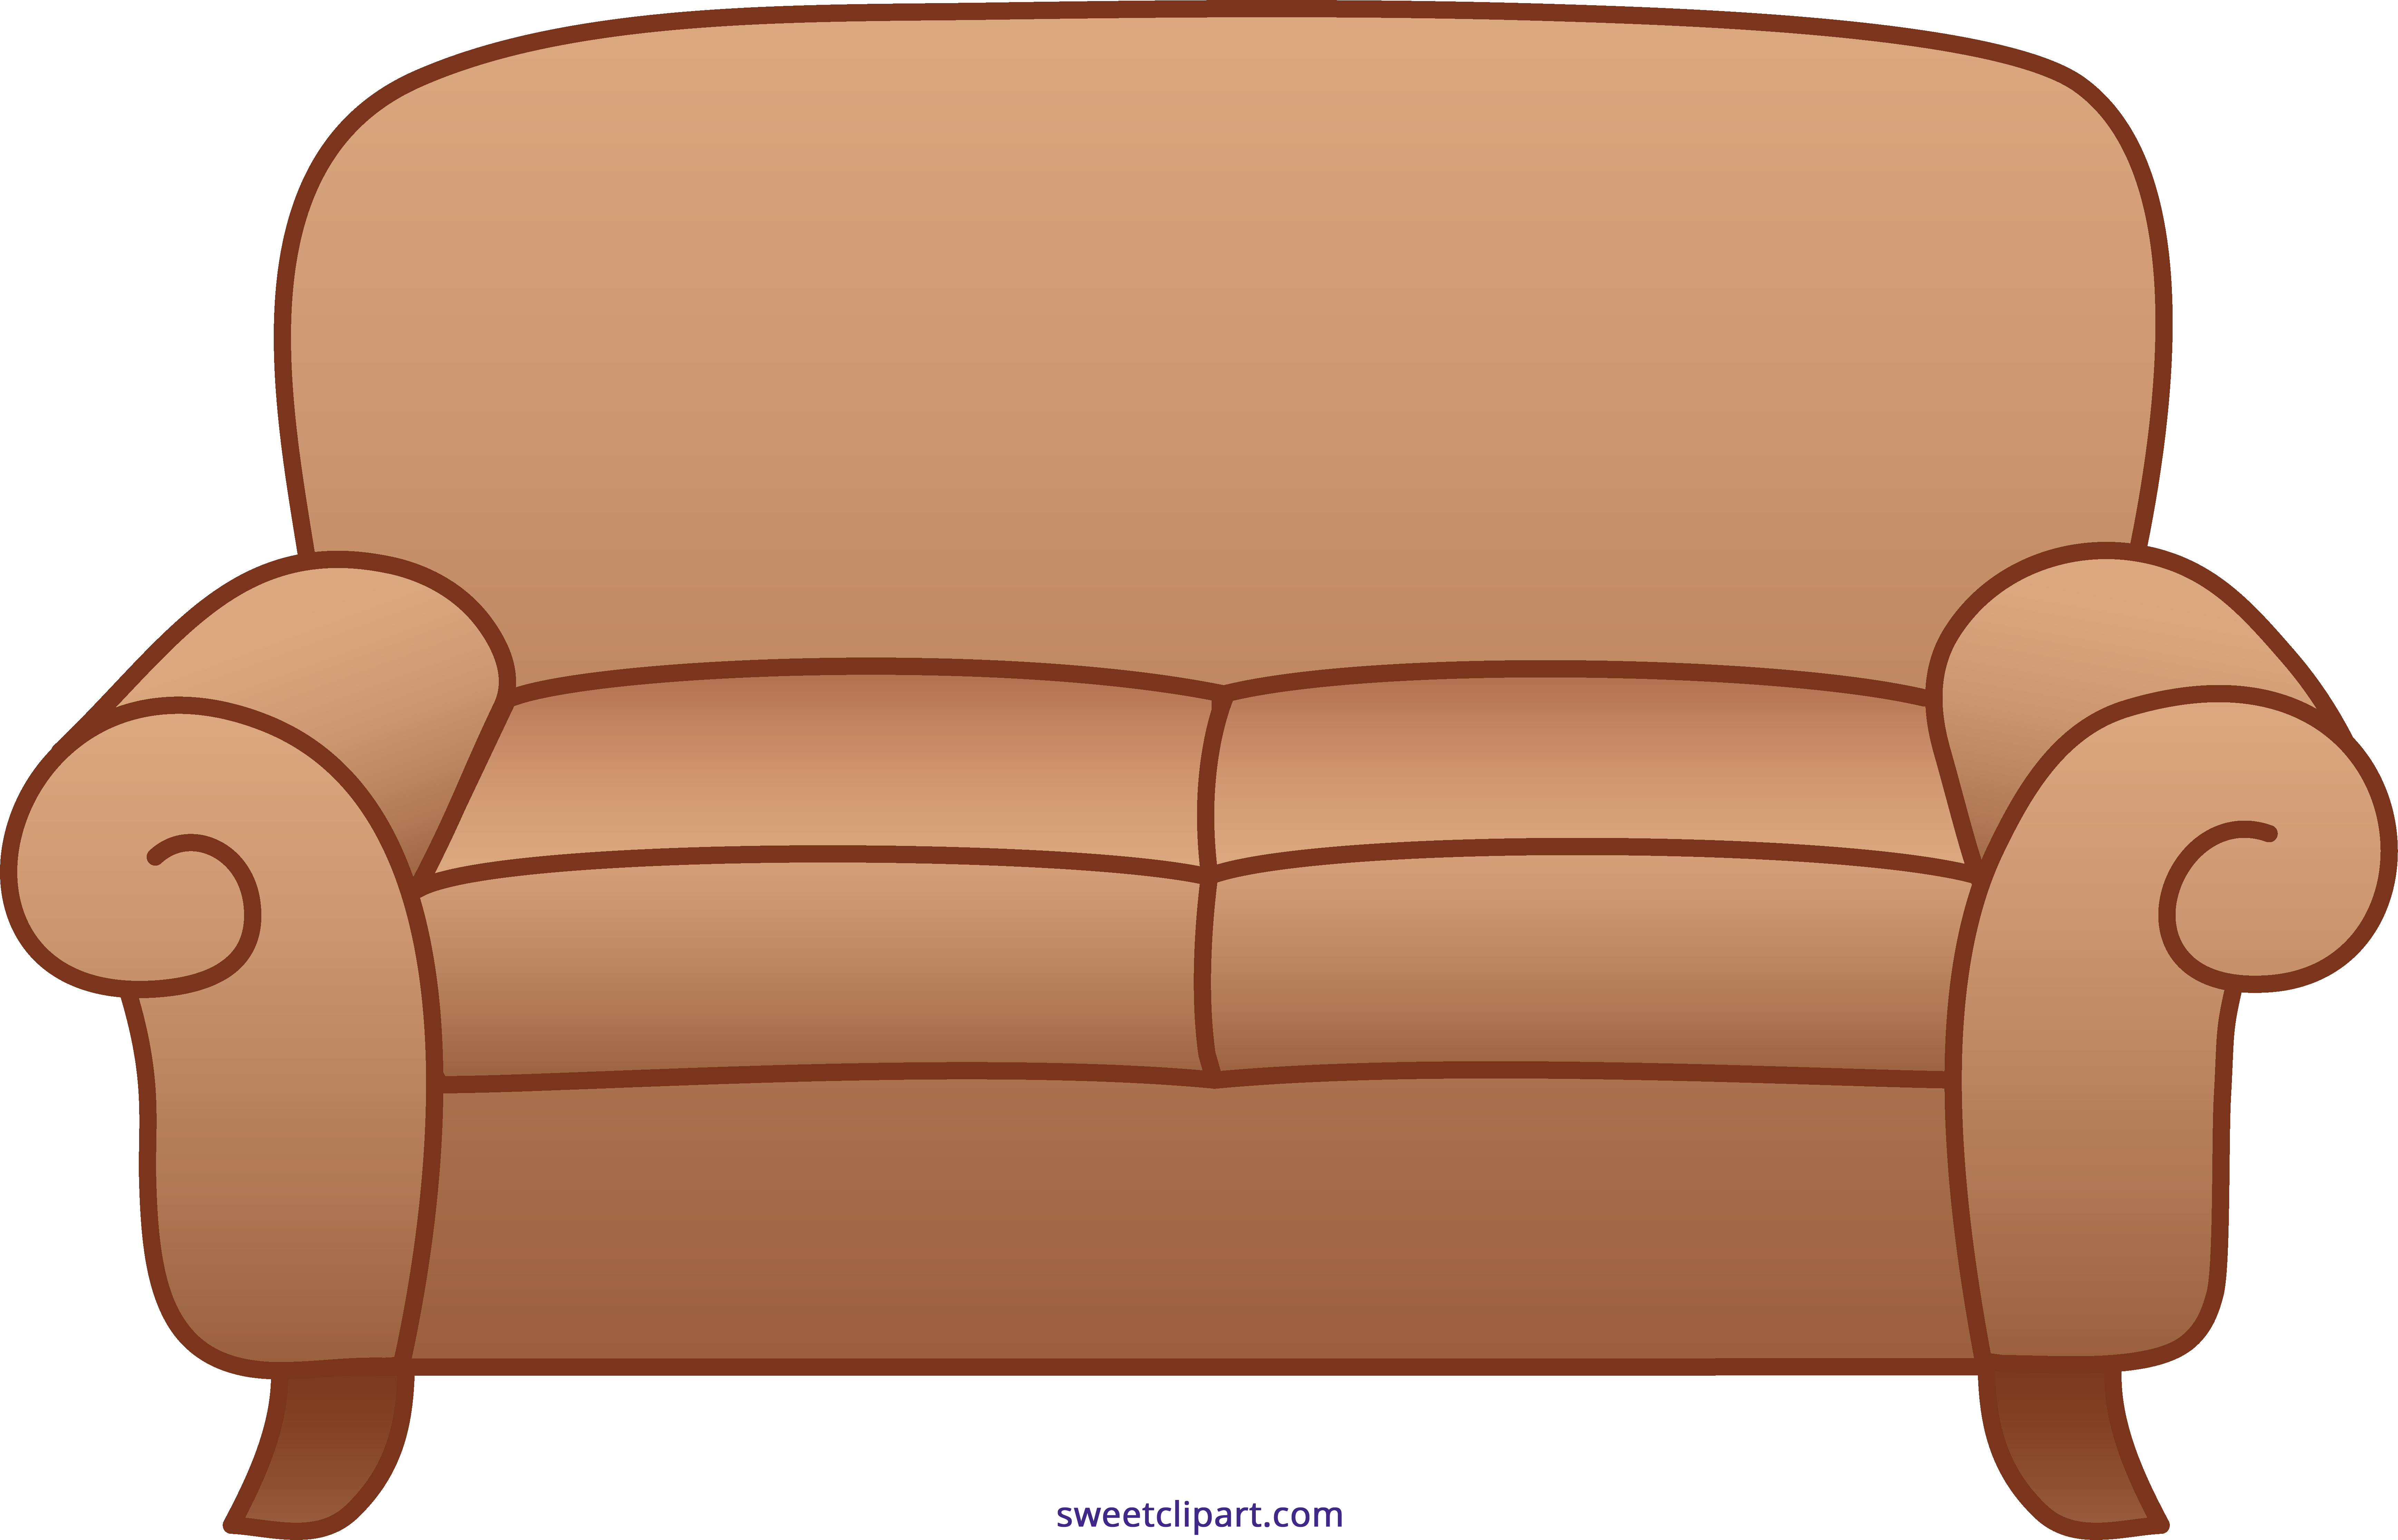 free Sofa cute free on. Couch clipart